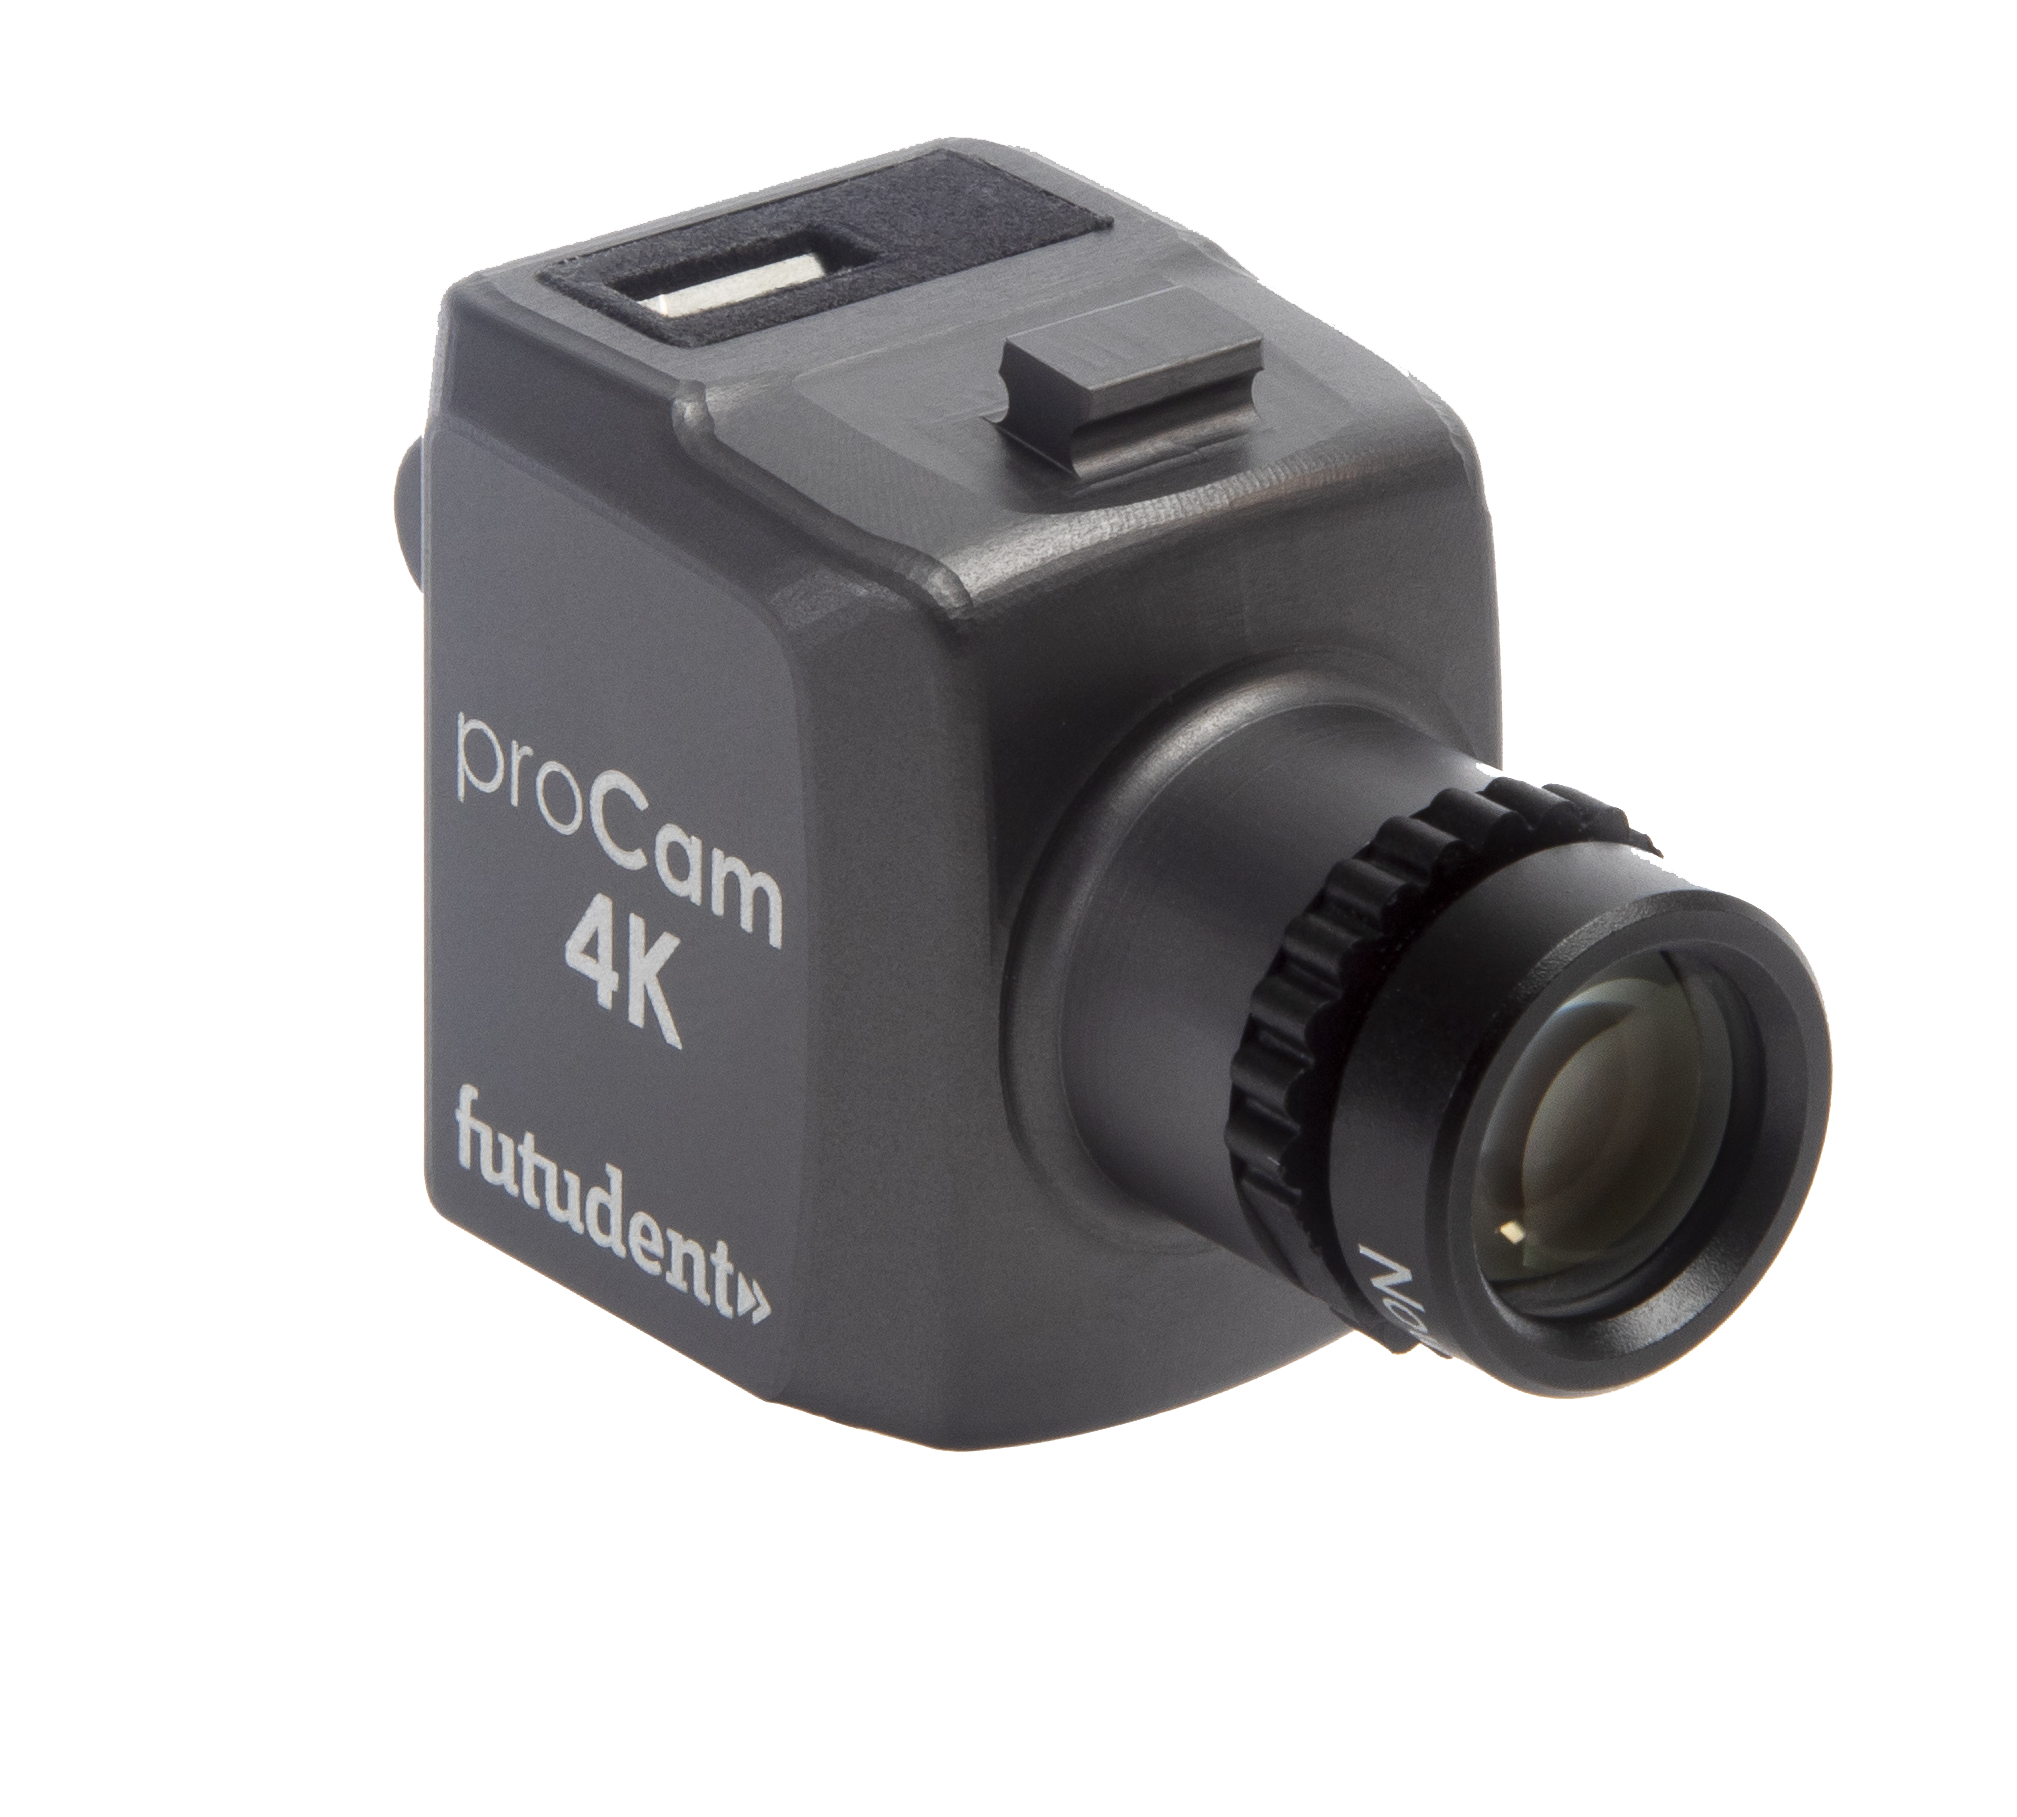 proCam - Aug 2018.png